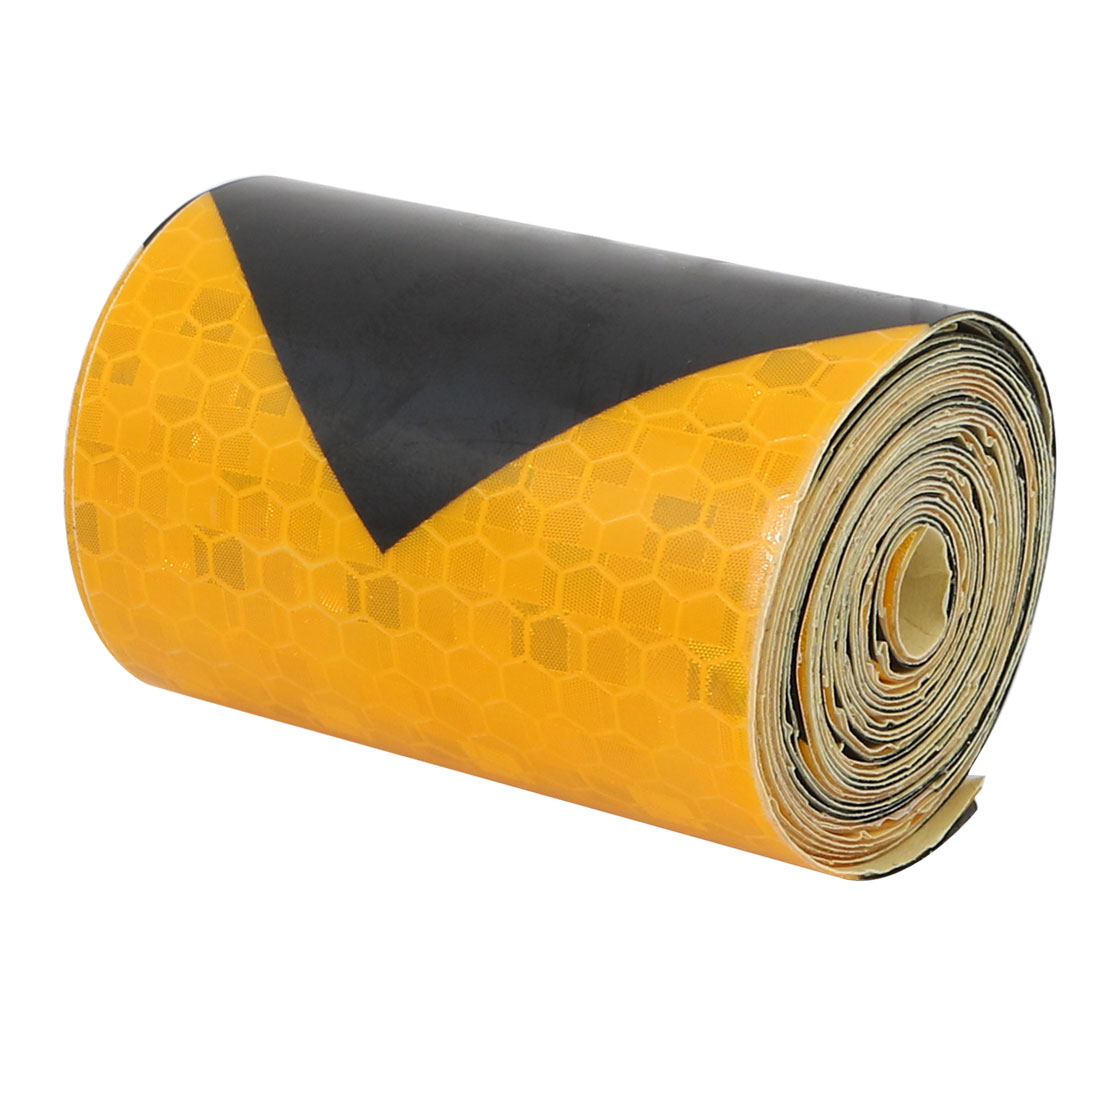 2Meter Length 5cm Width Honeycomb Adhesive Reflective Warning Tape Yellow Black